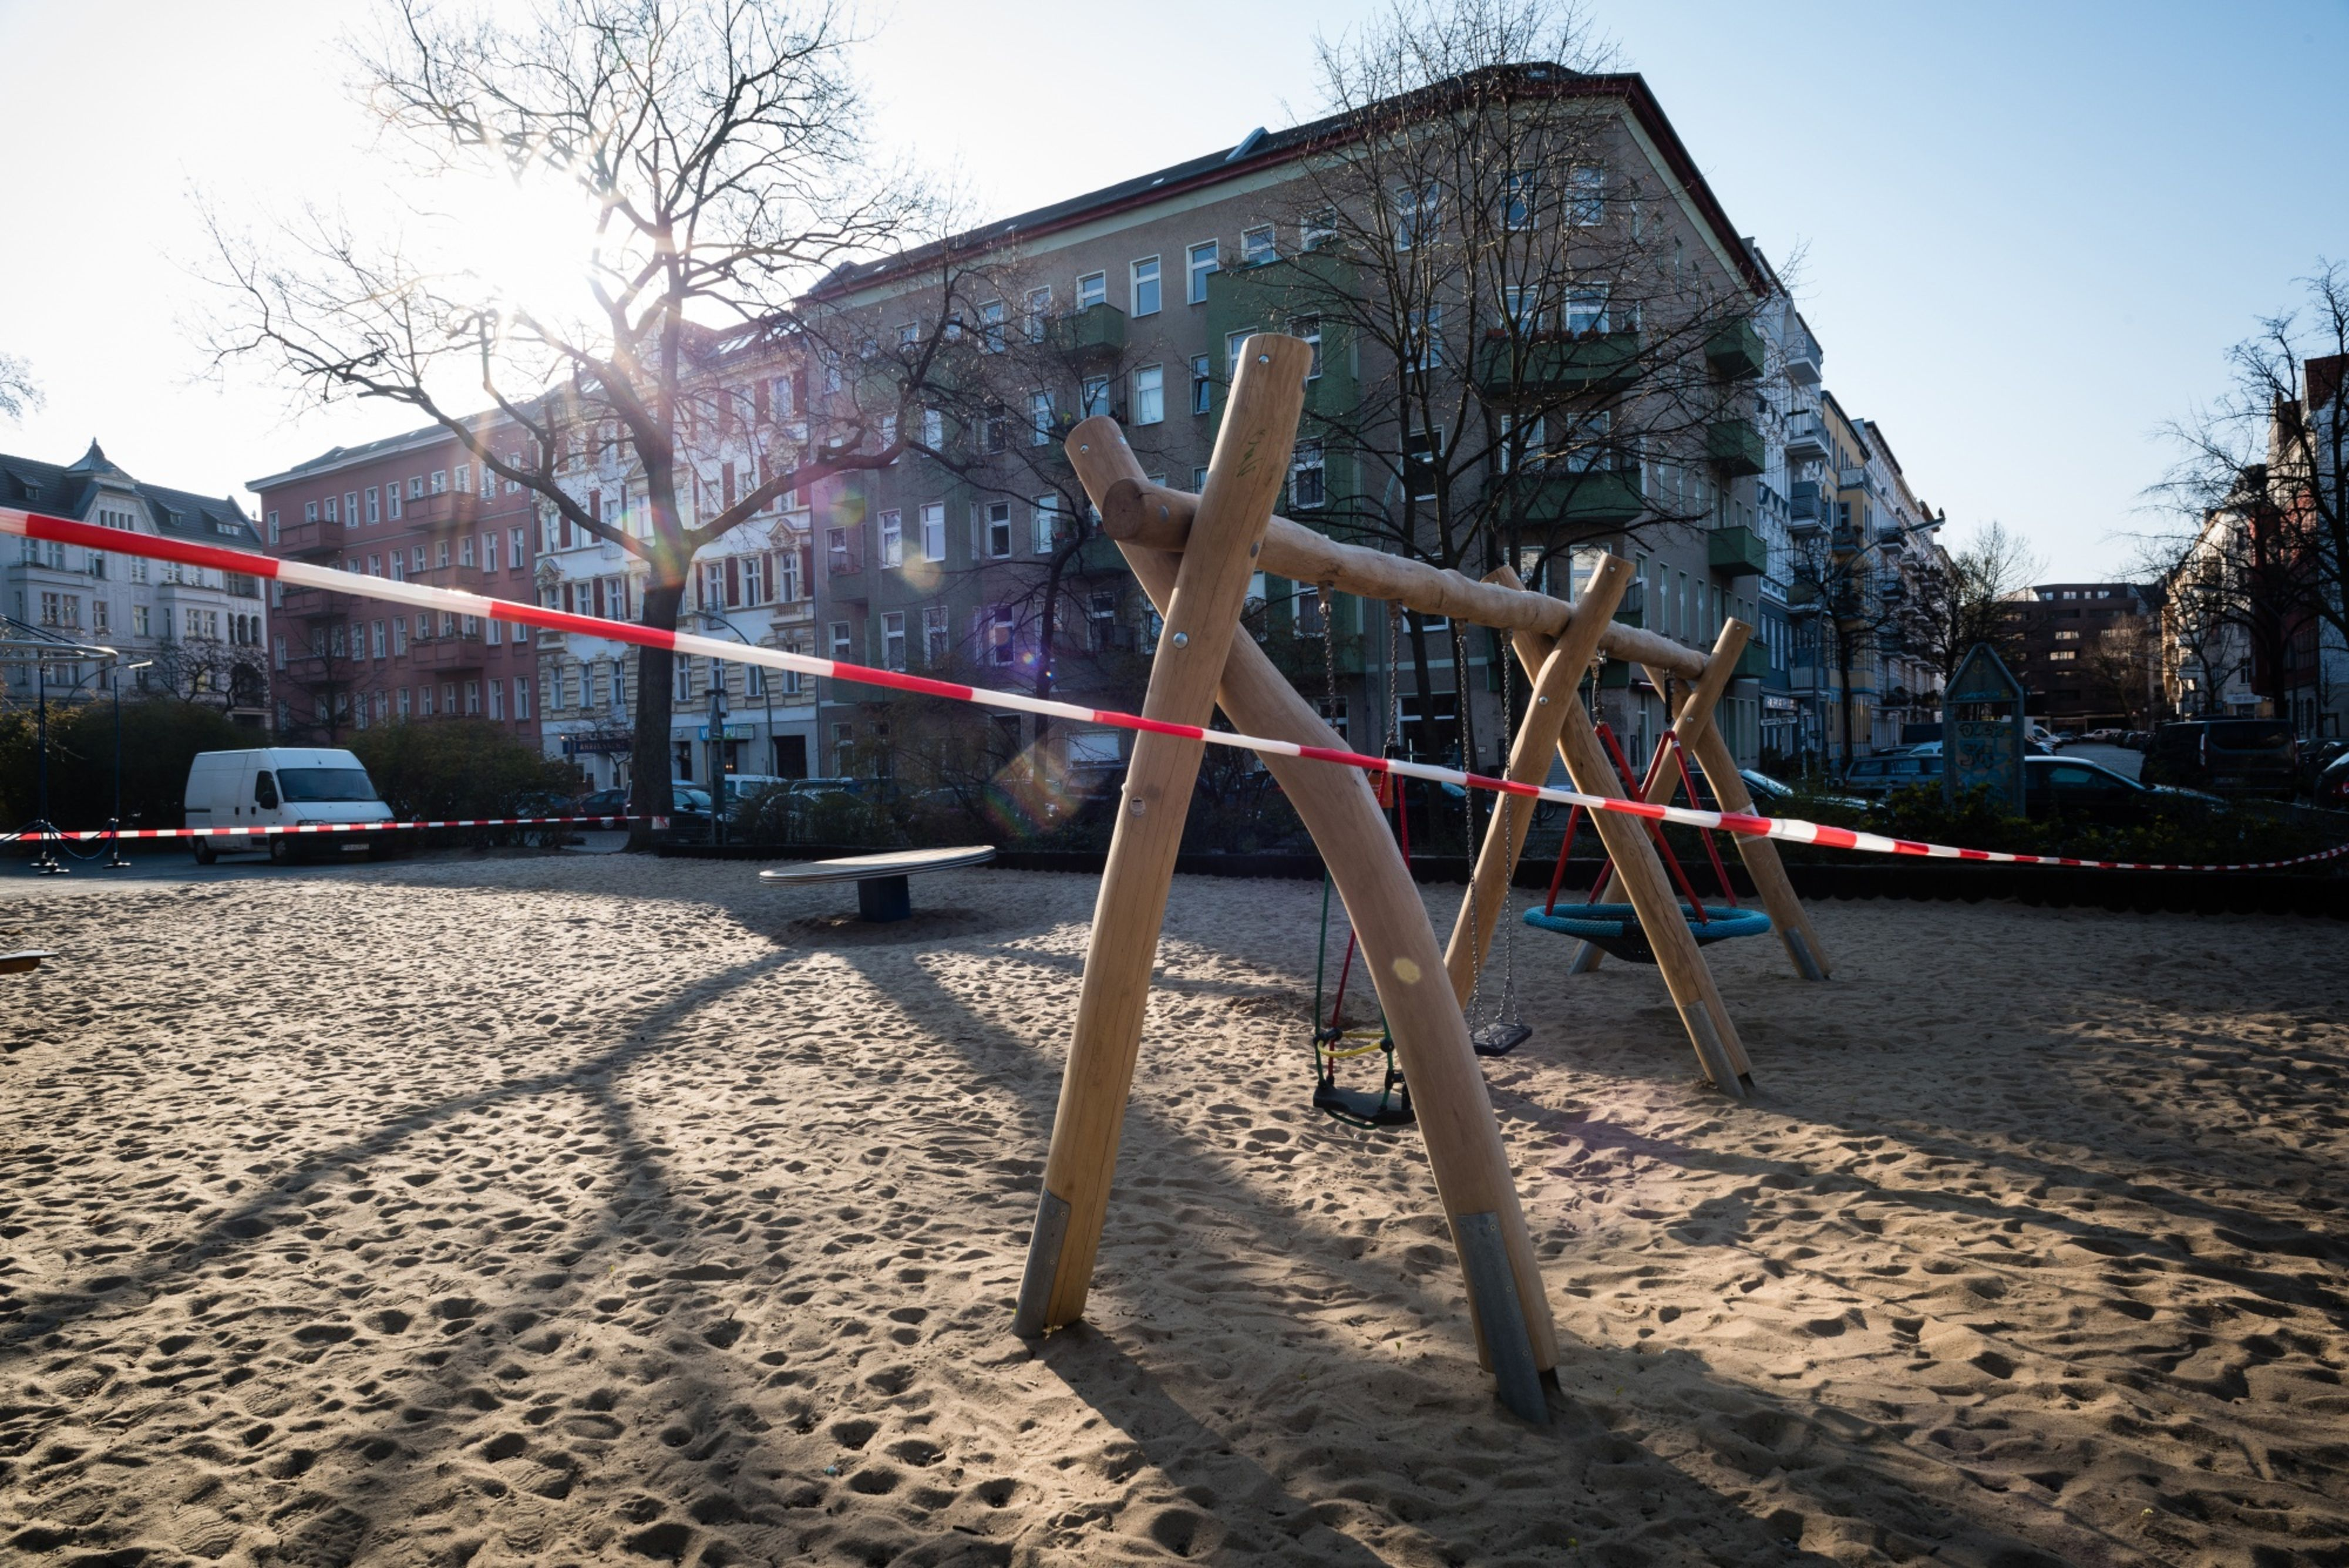 A cordon blocks access to a children's playground in Berlin on March 26. Photo: Bloomberg